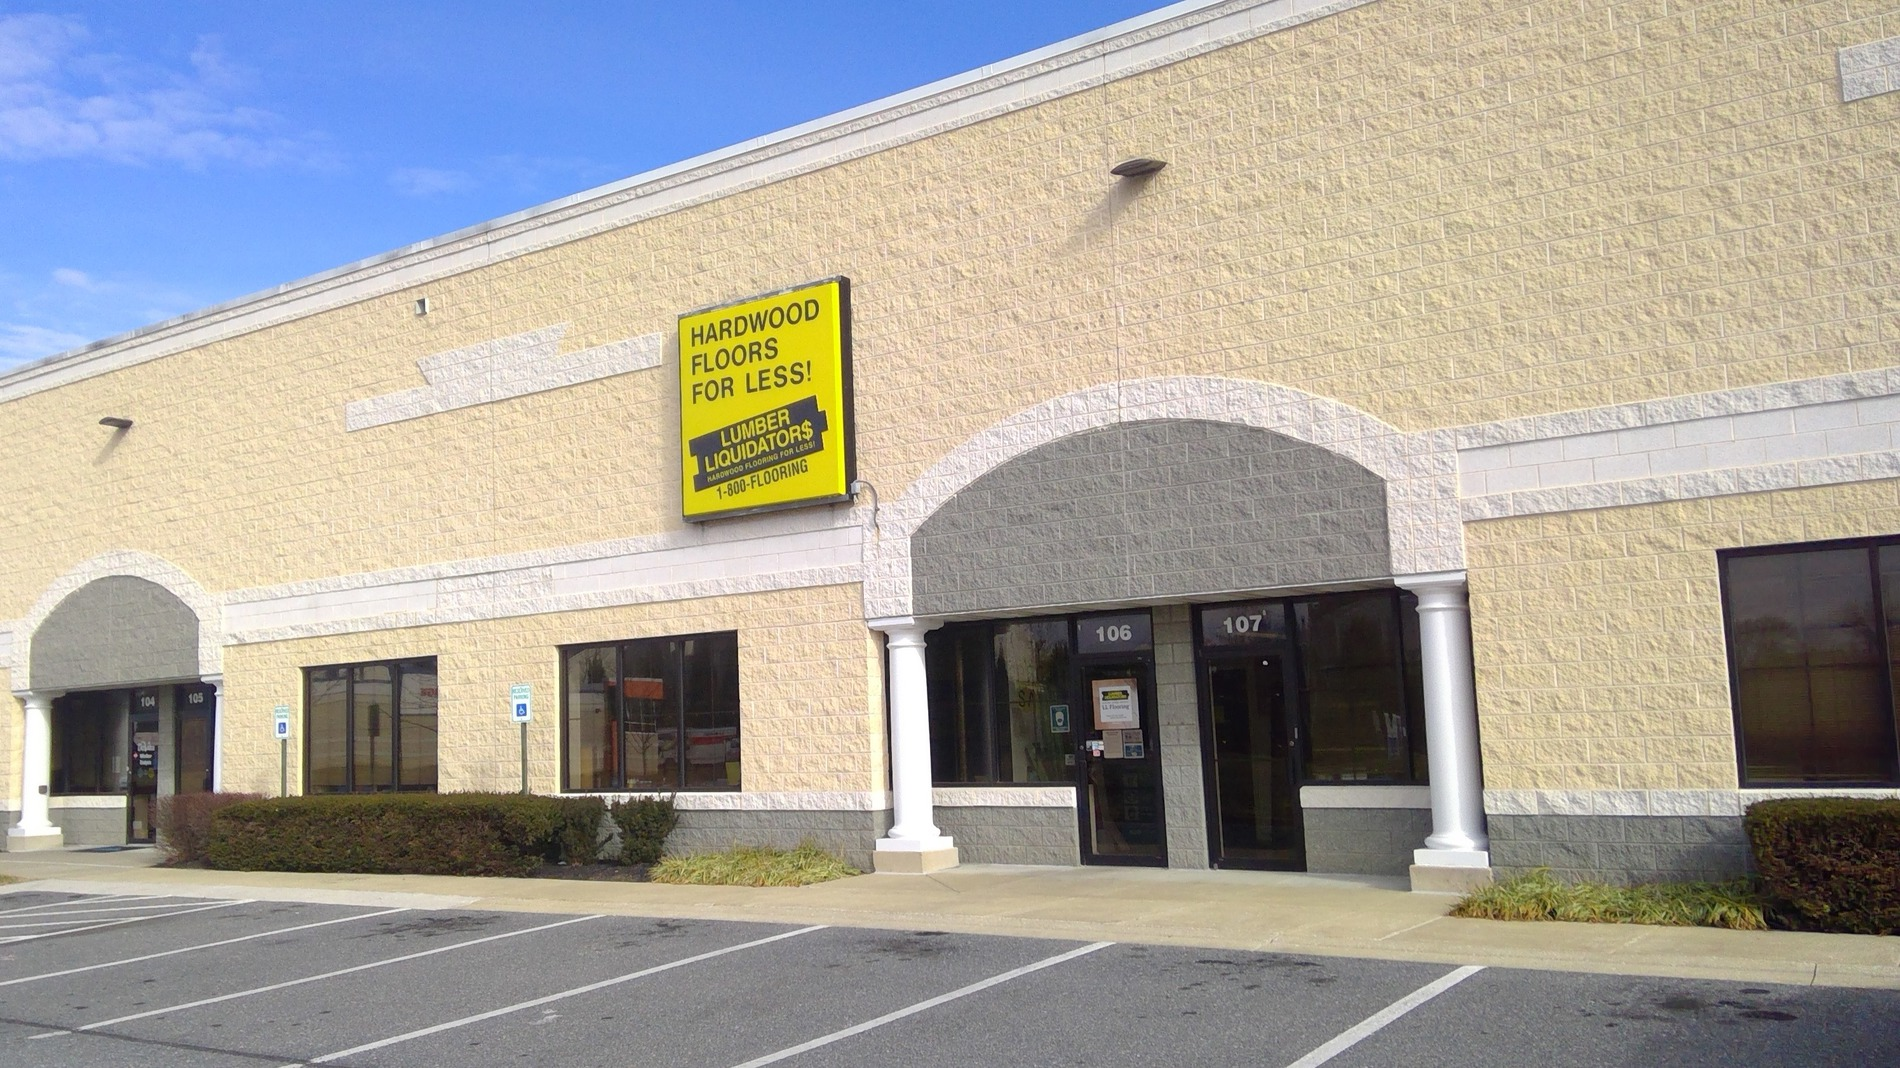 LL Flooring #1084 Baltimore | 2707 N Rolling Road | Storefront